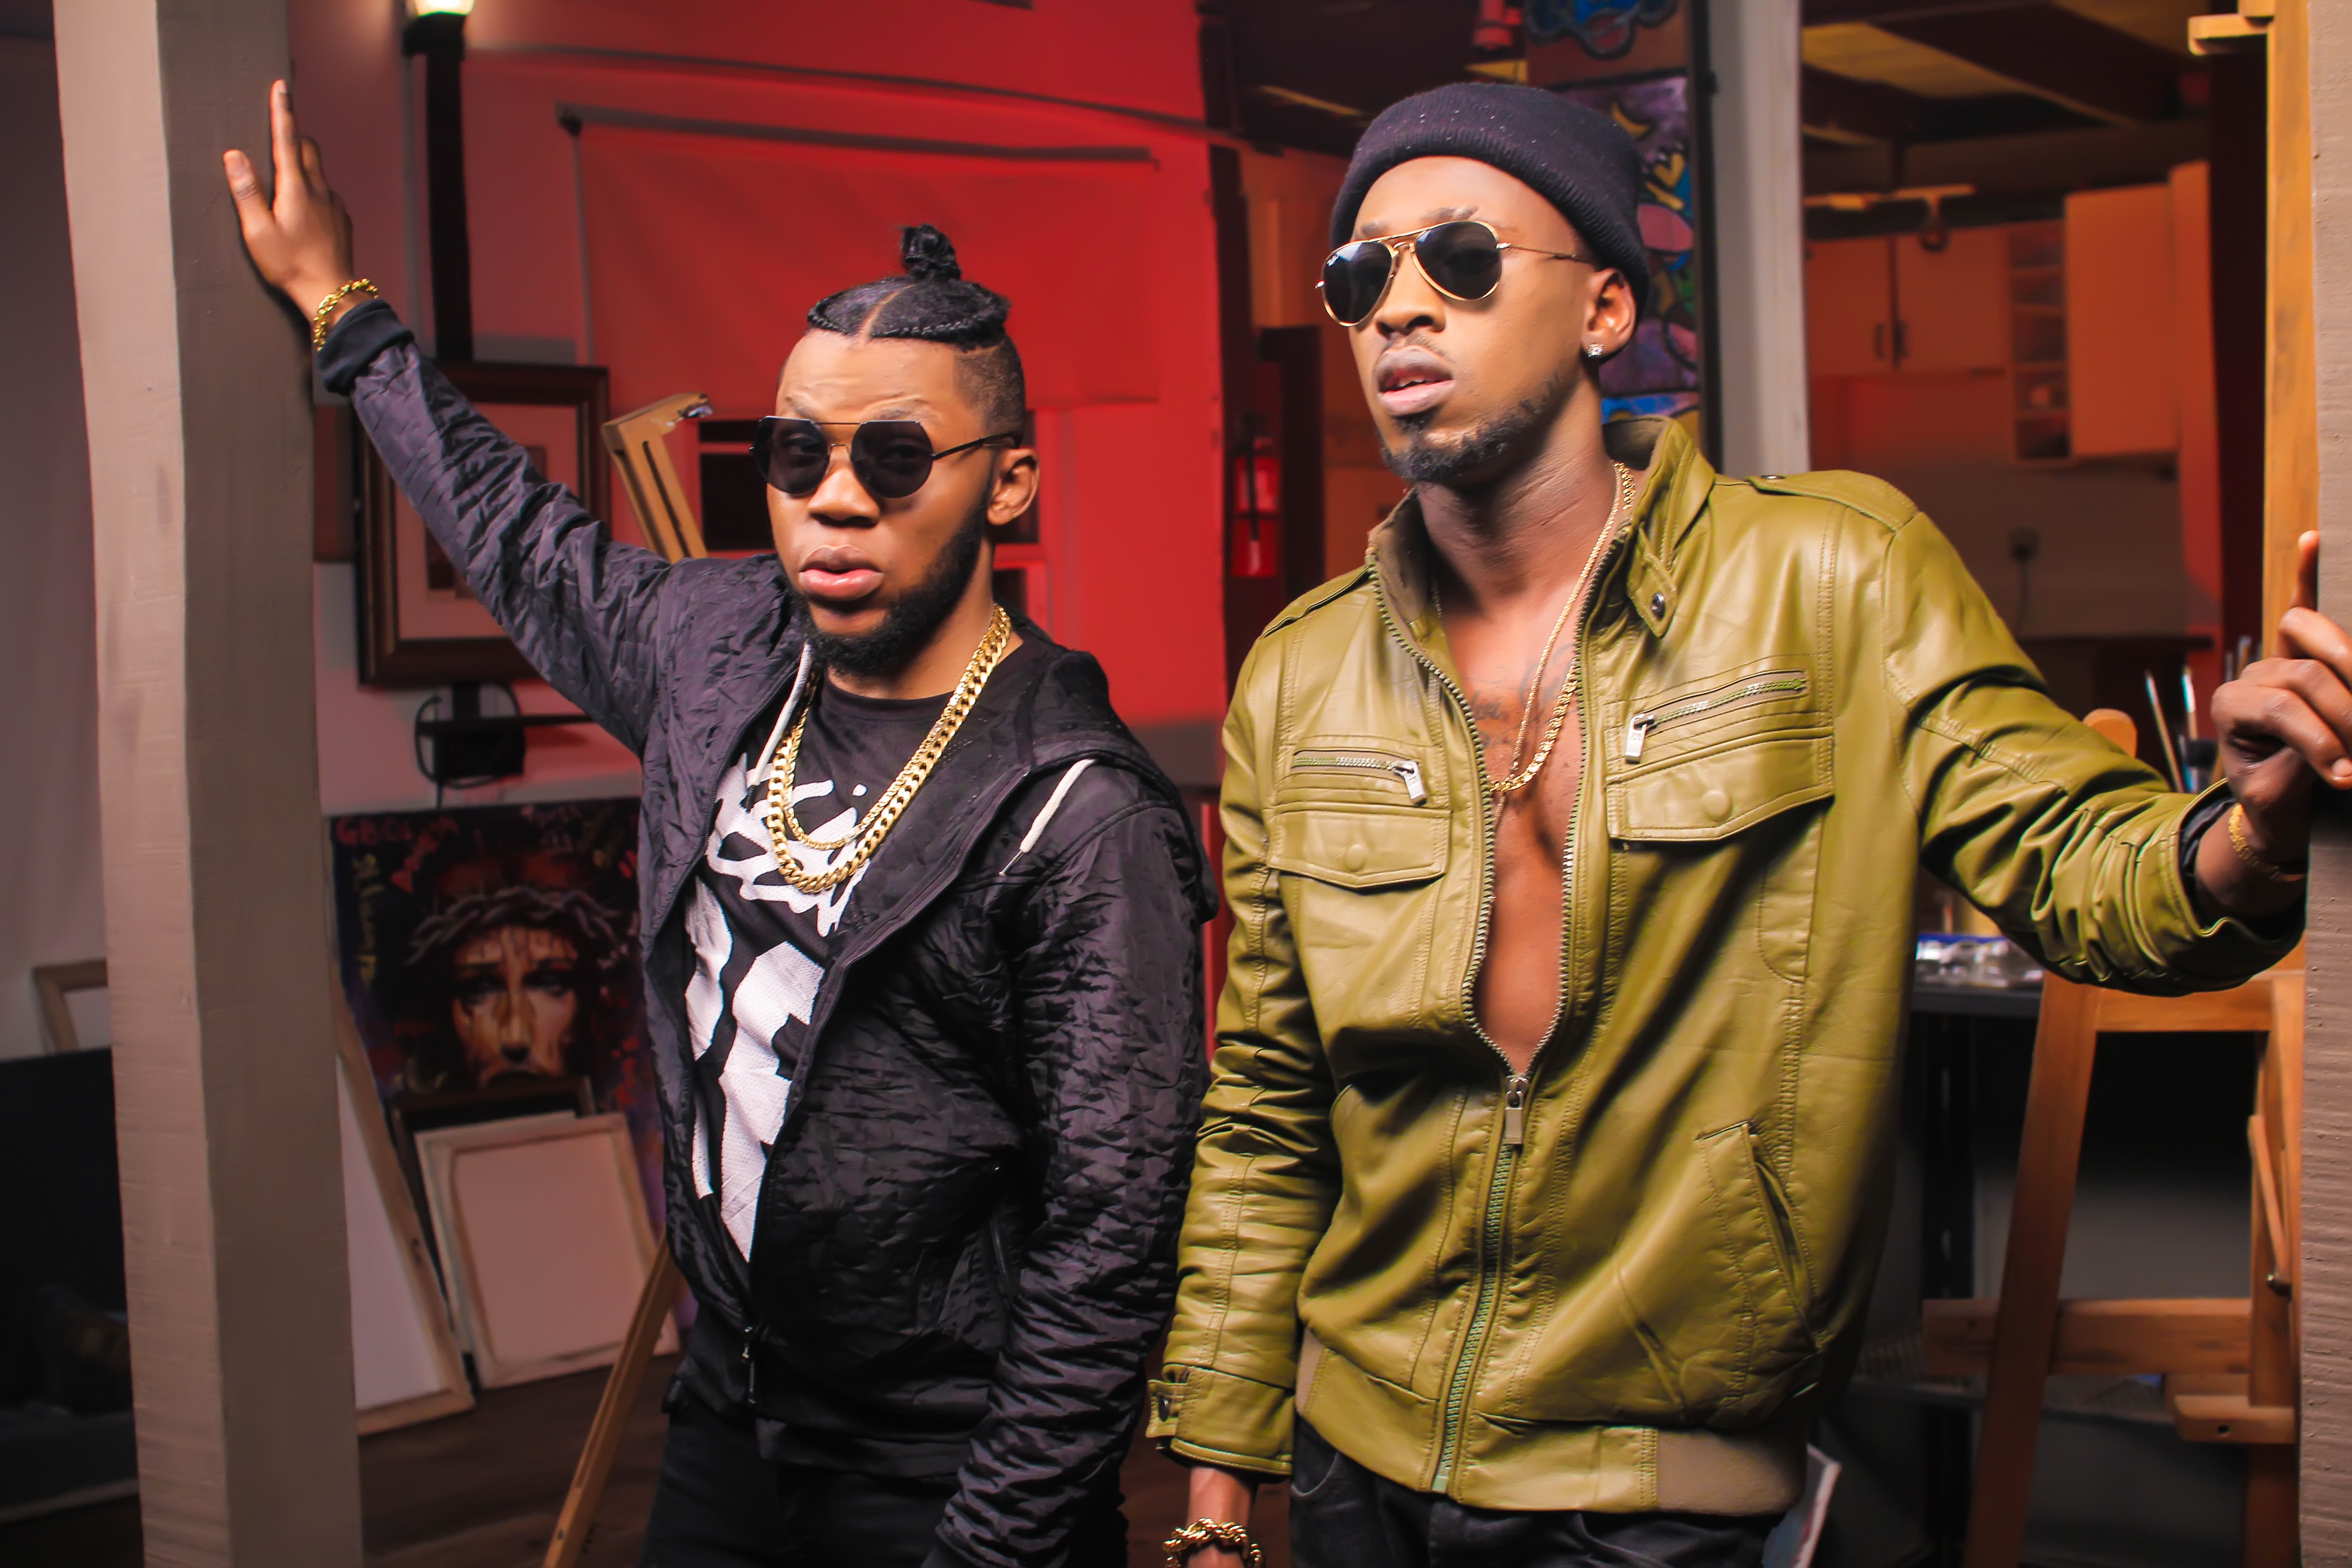 """Photo of BEHIND THE SCENE PICTURES FROM KINGMIC """"BAMIDELE"""" RMX VIDEO SHOOT FEATURING OREZI."""